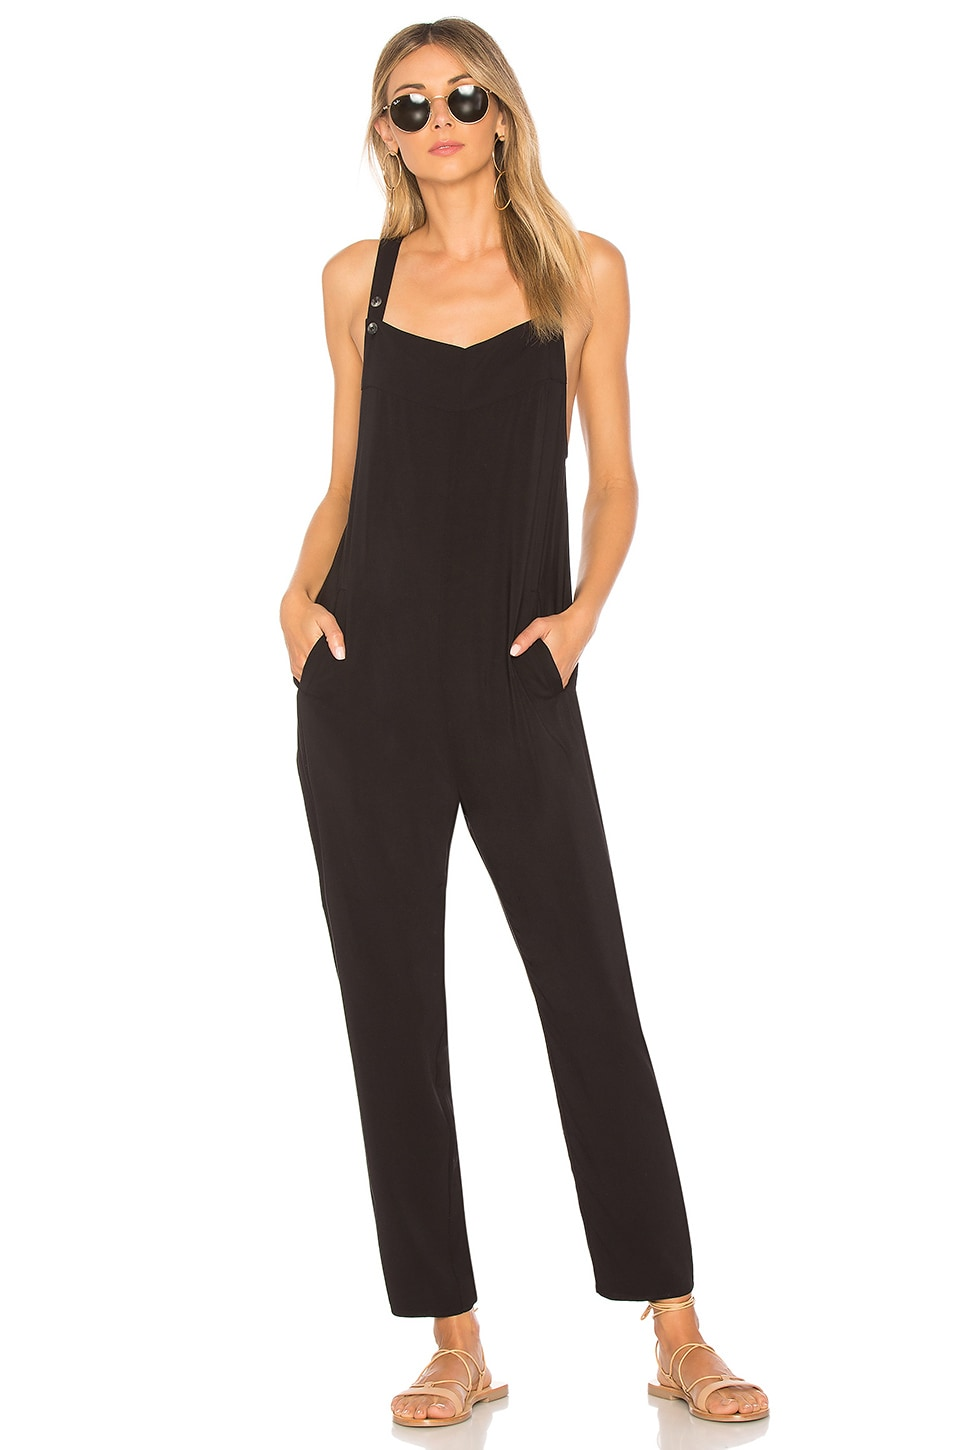 TAVIK Swimwear Elodie Jumpsuit in Black